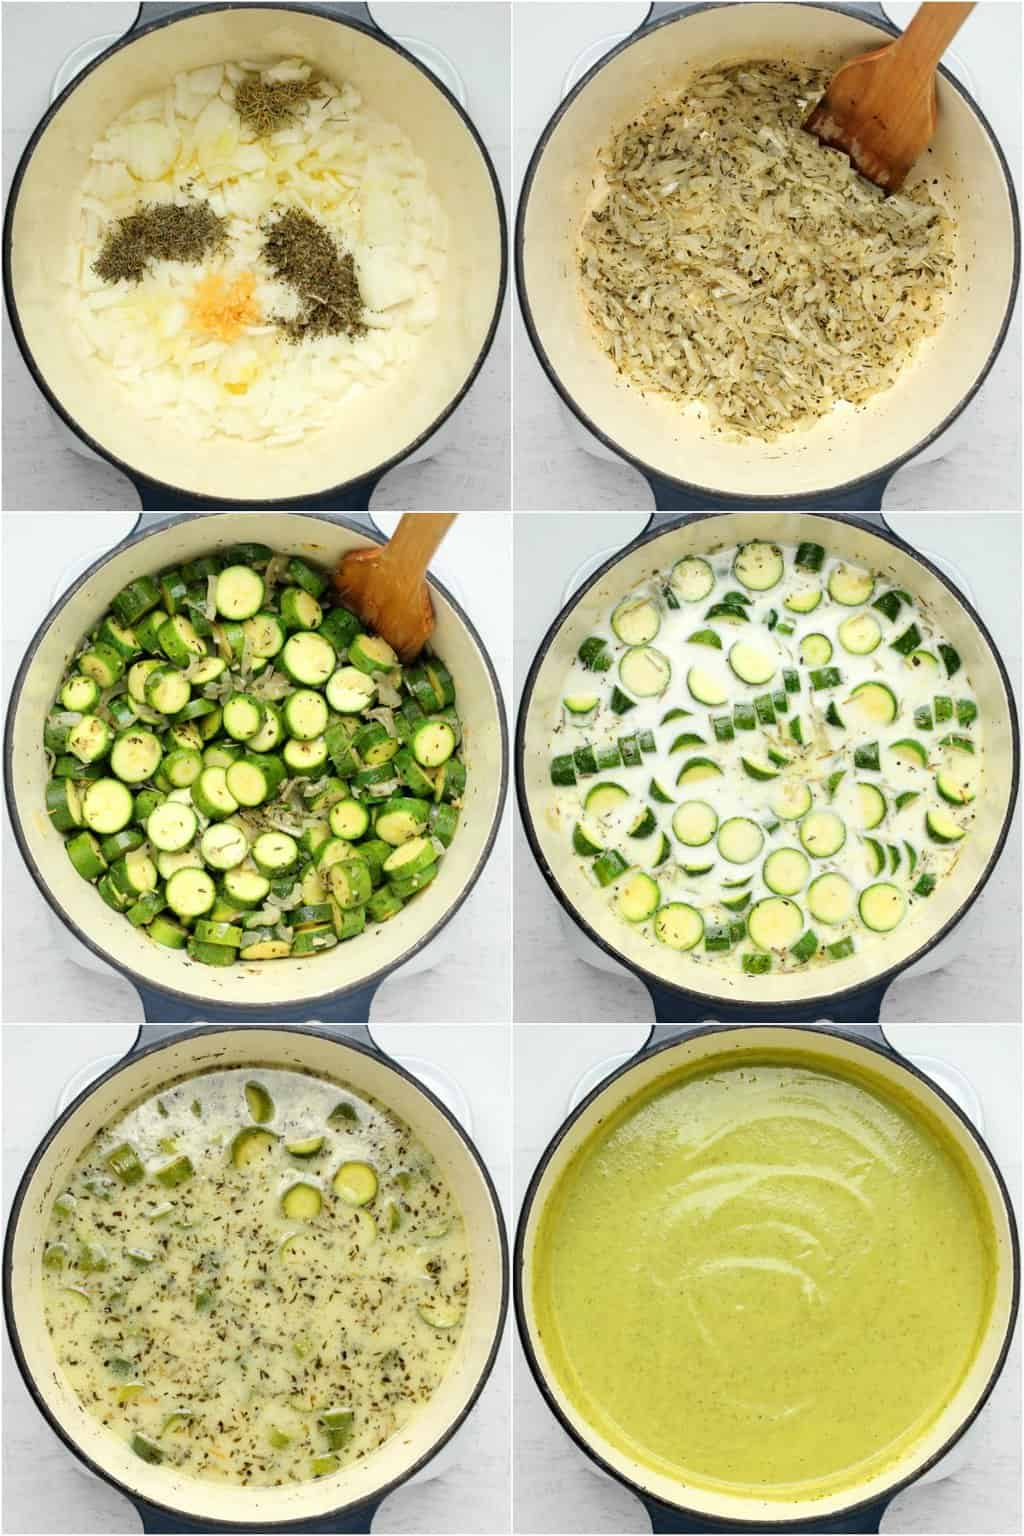 Step by step process photo collage of making vegan zucchini soup.